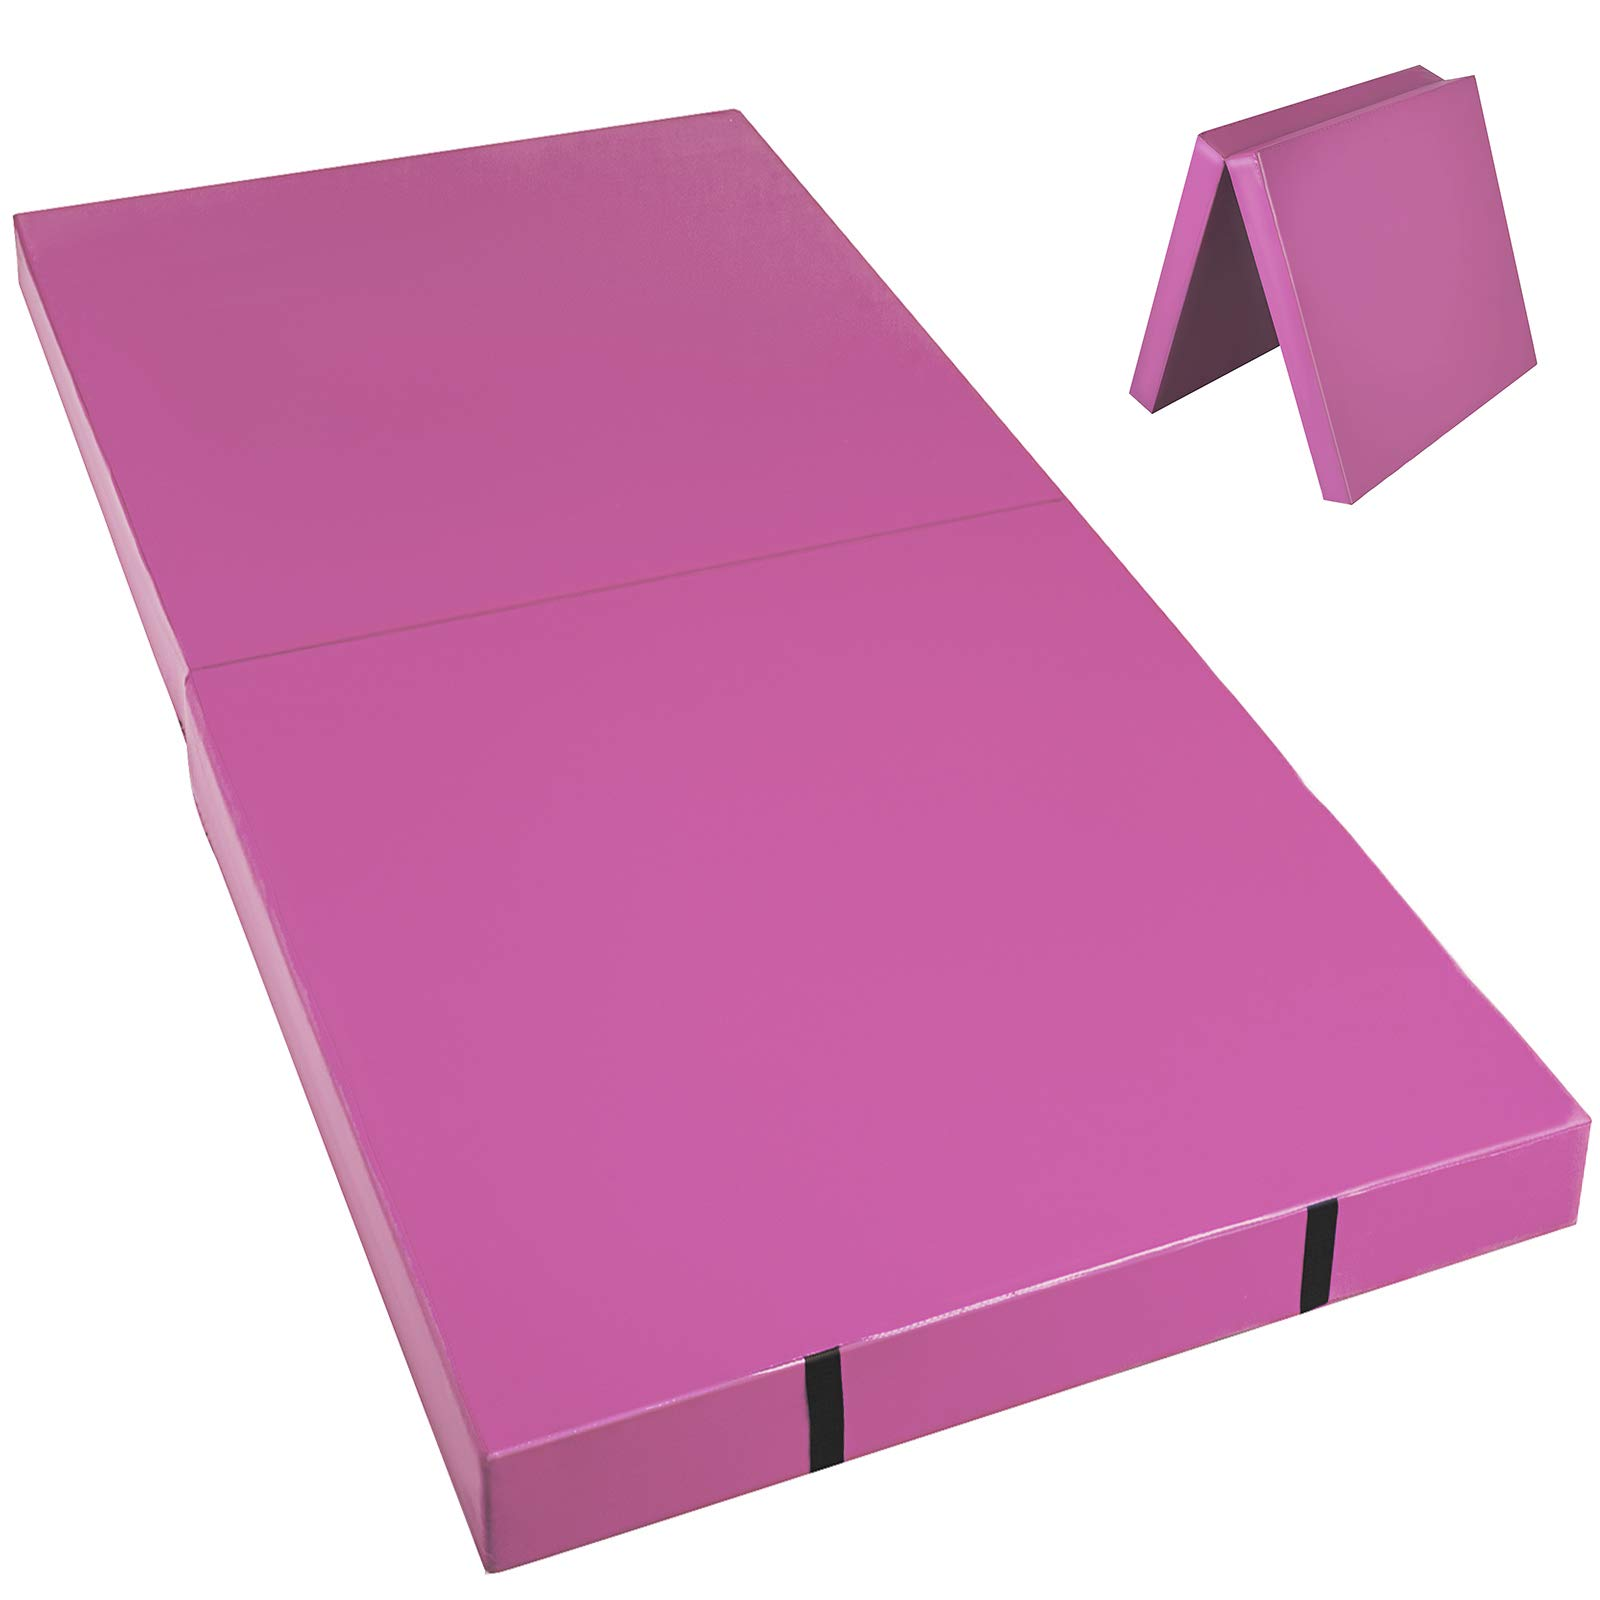 Happybuy Junior Practice Mat 6x3x4 inches Pink Folding Gym Mat High Density Folding Mat 4 inch Thick for Gymnastics Stretching Core Workouts